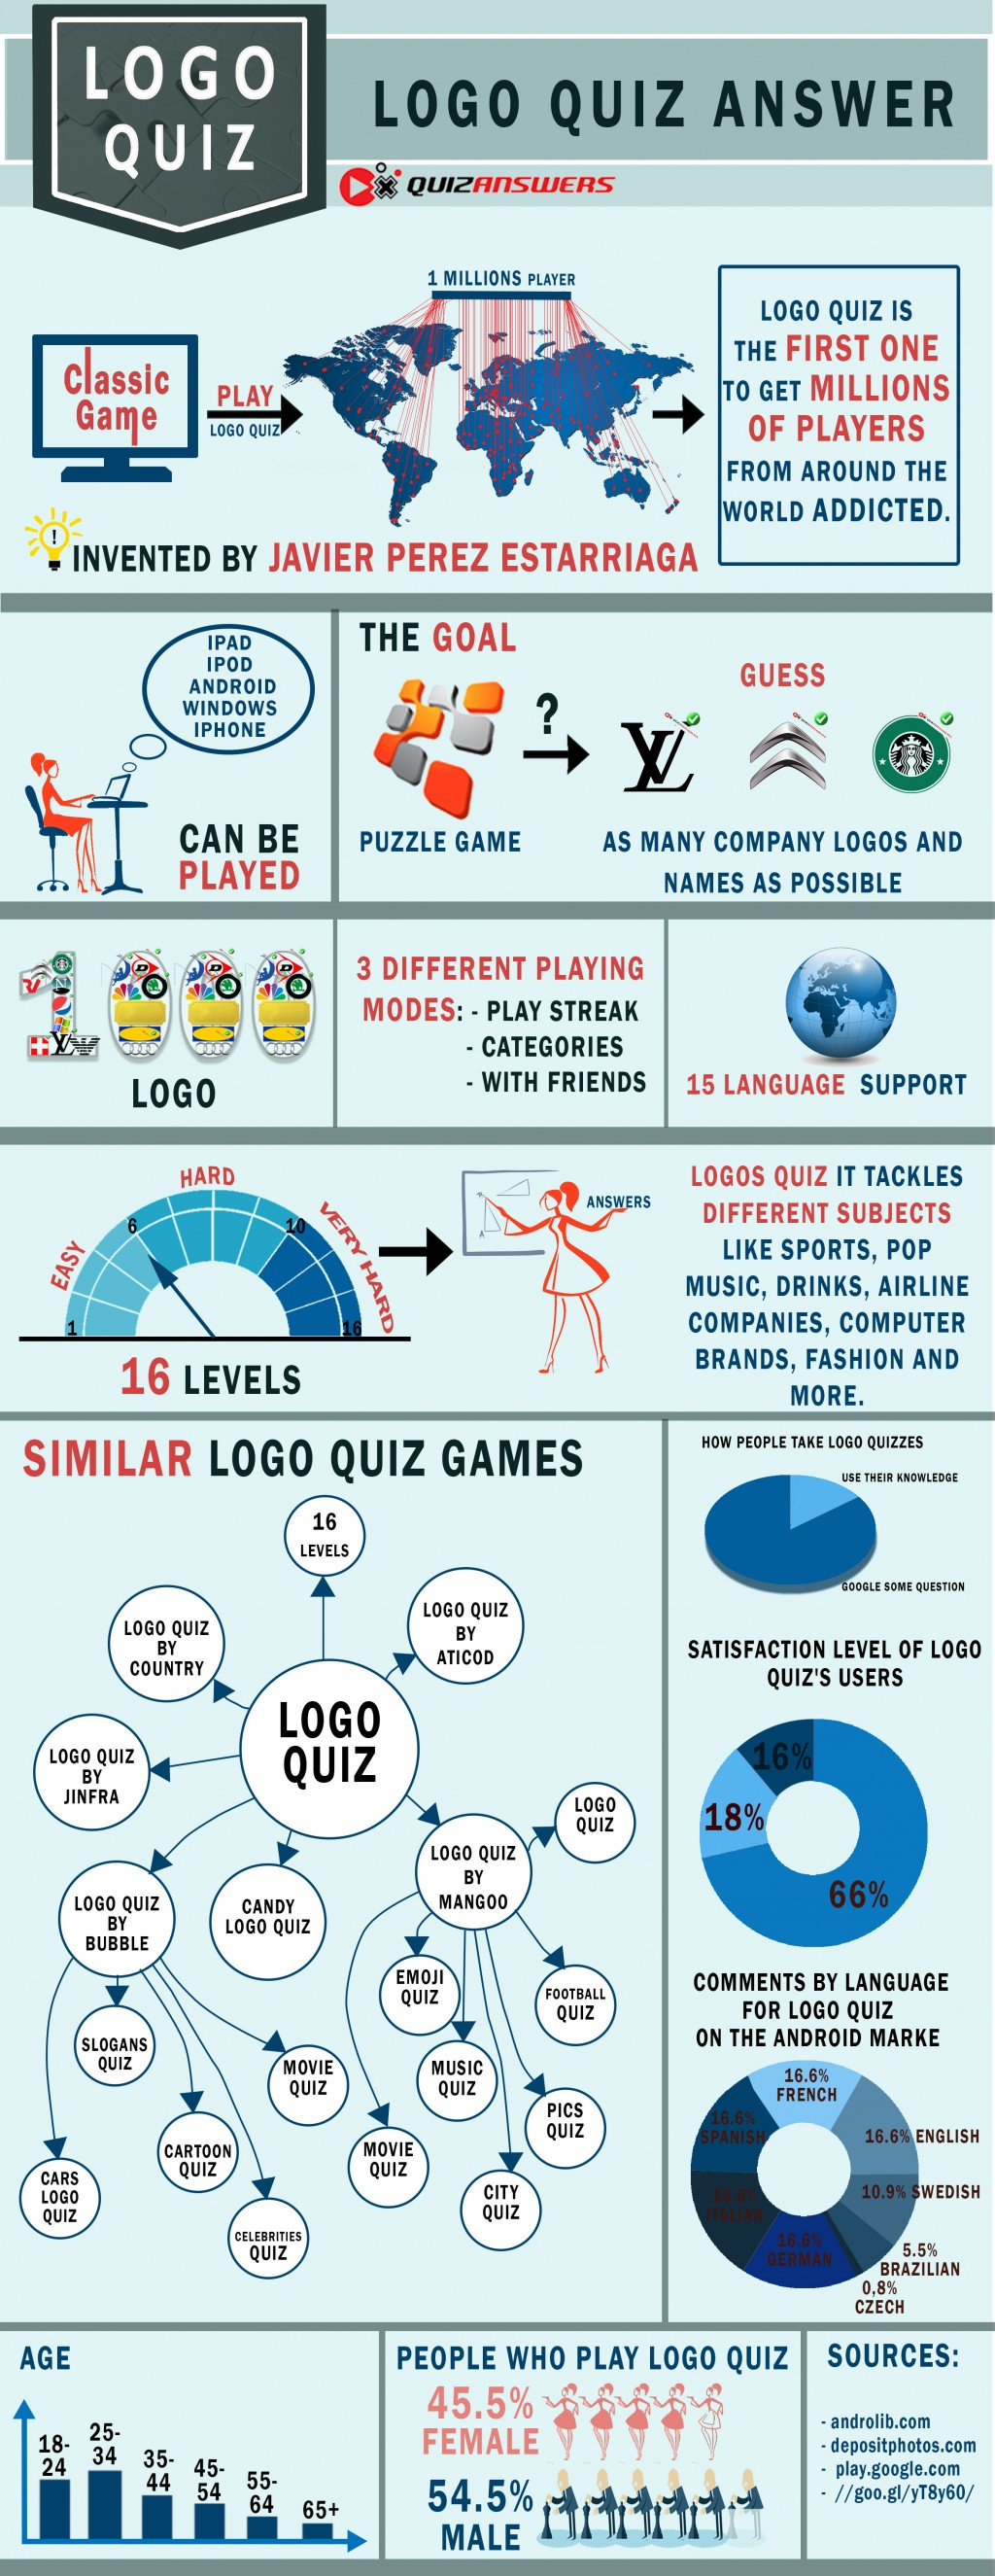 Logo Quiz Answers- All Levels From QuizAnswers.com